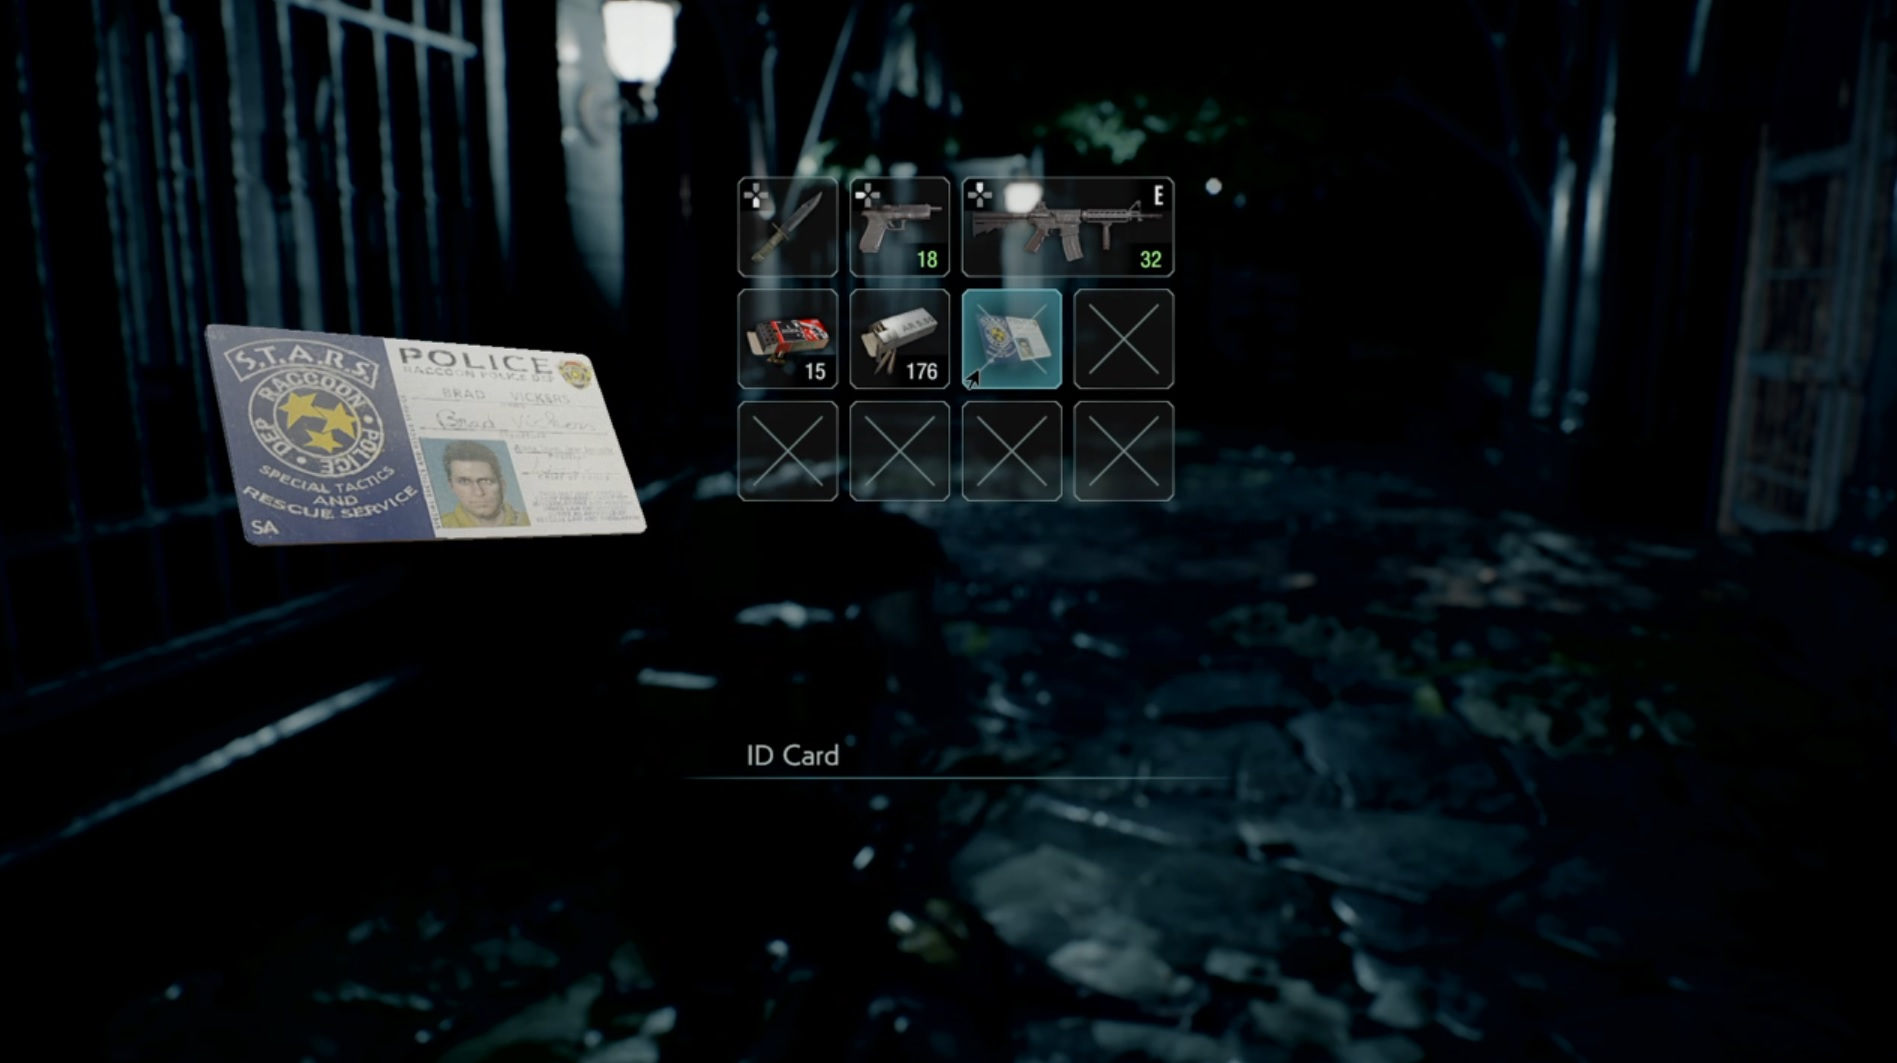 Resident Evil 3 remake: S.T.A.R.S. ID card.